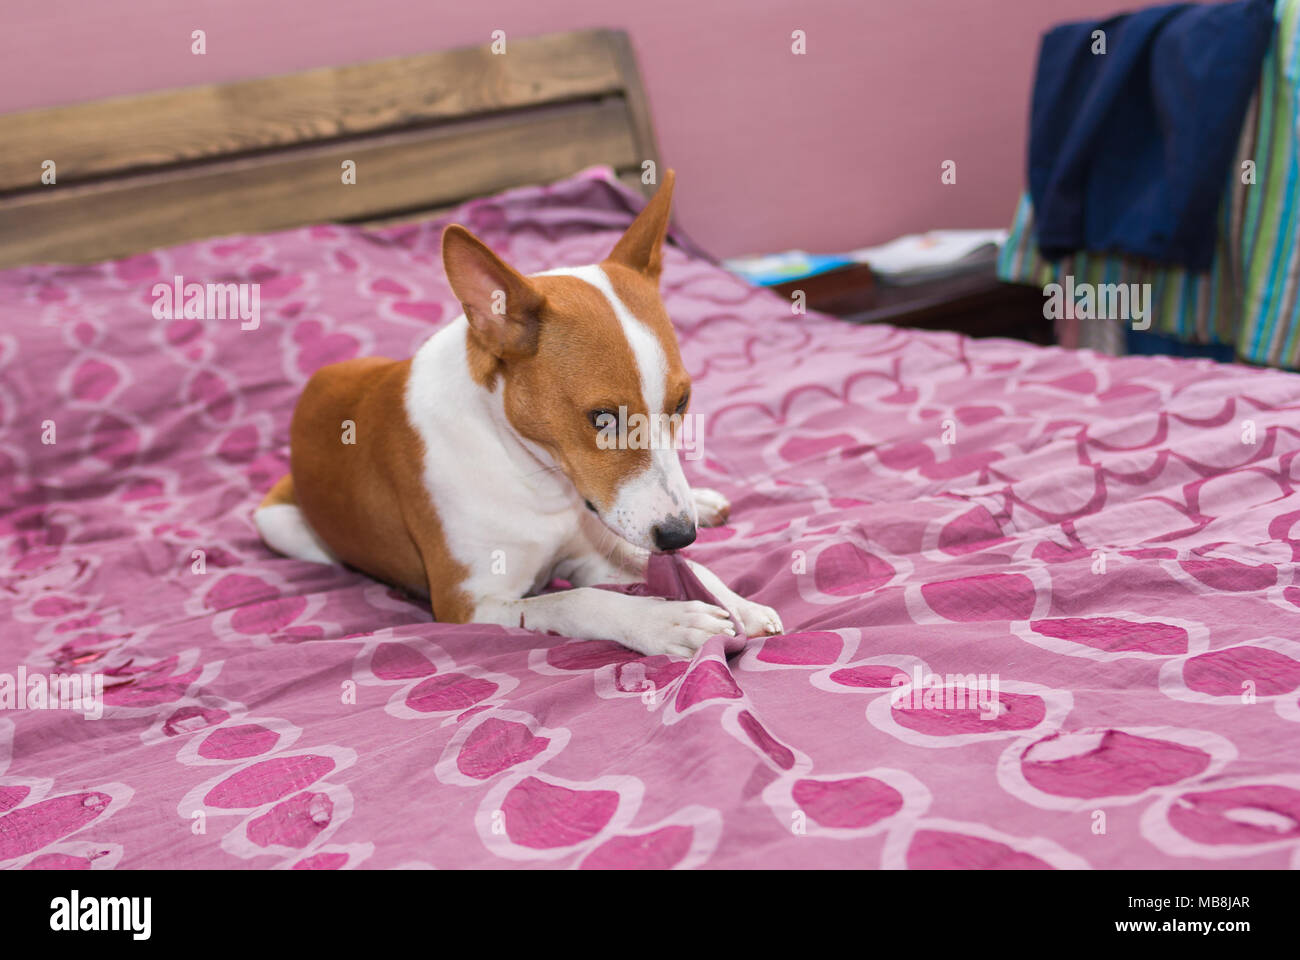 Everything About The Dog Stock Photos & Everything About The